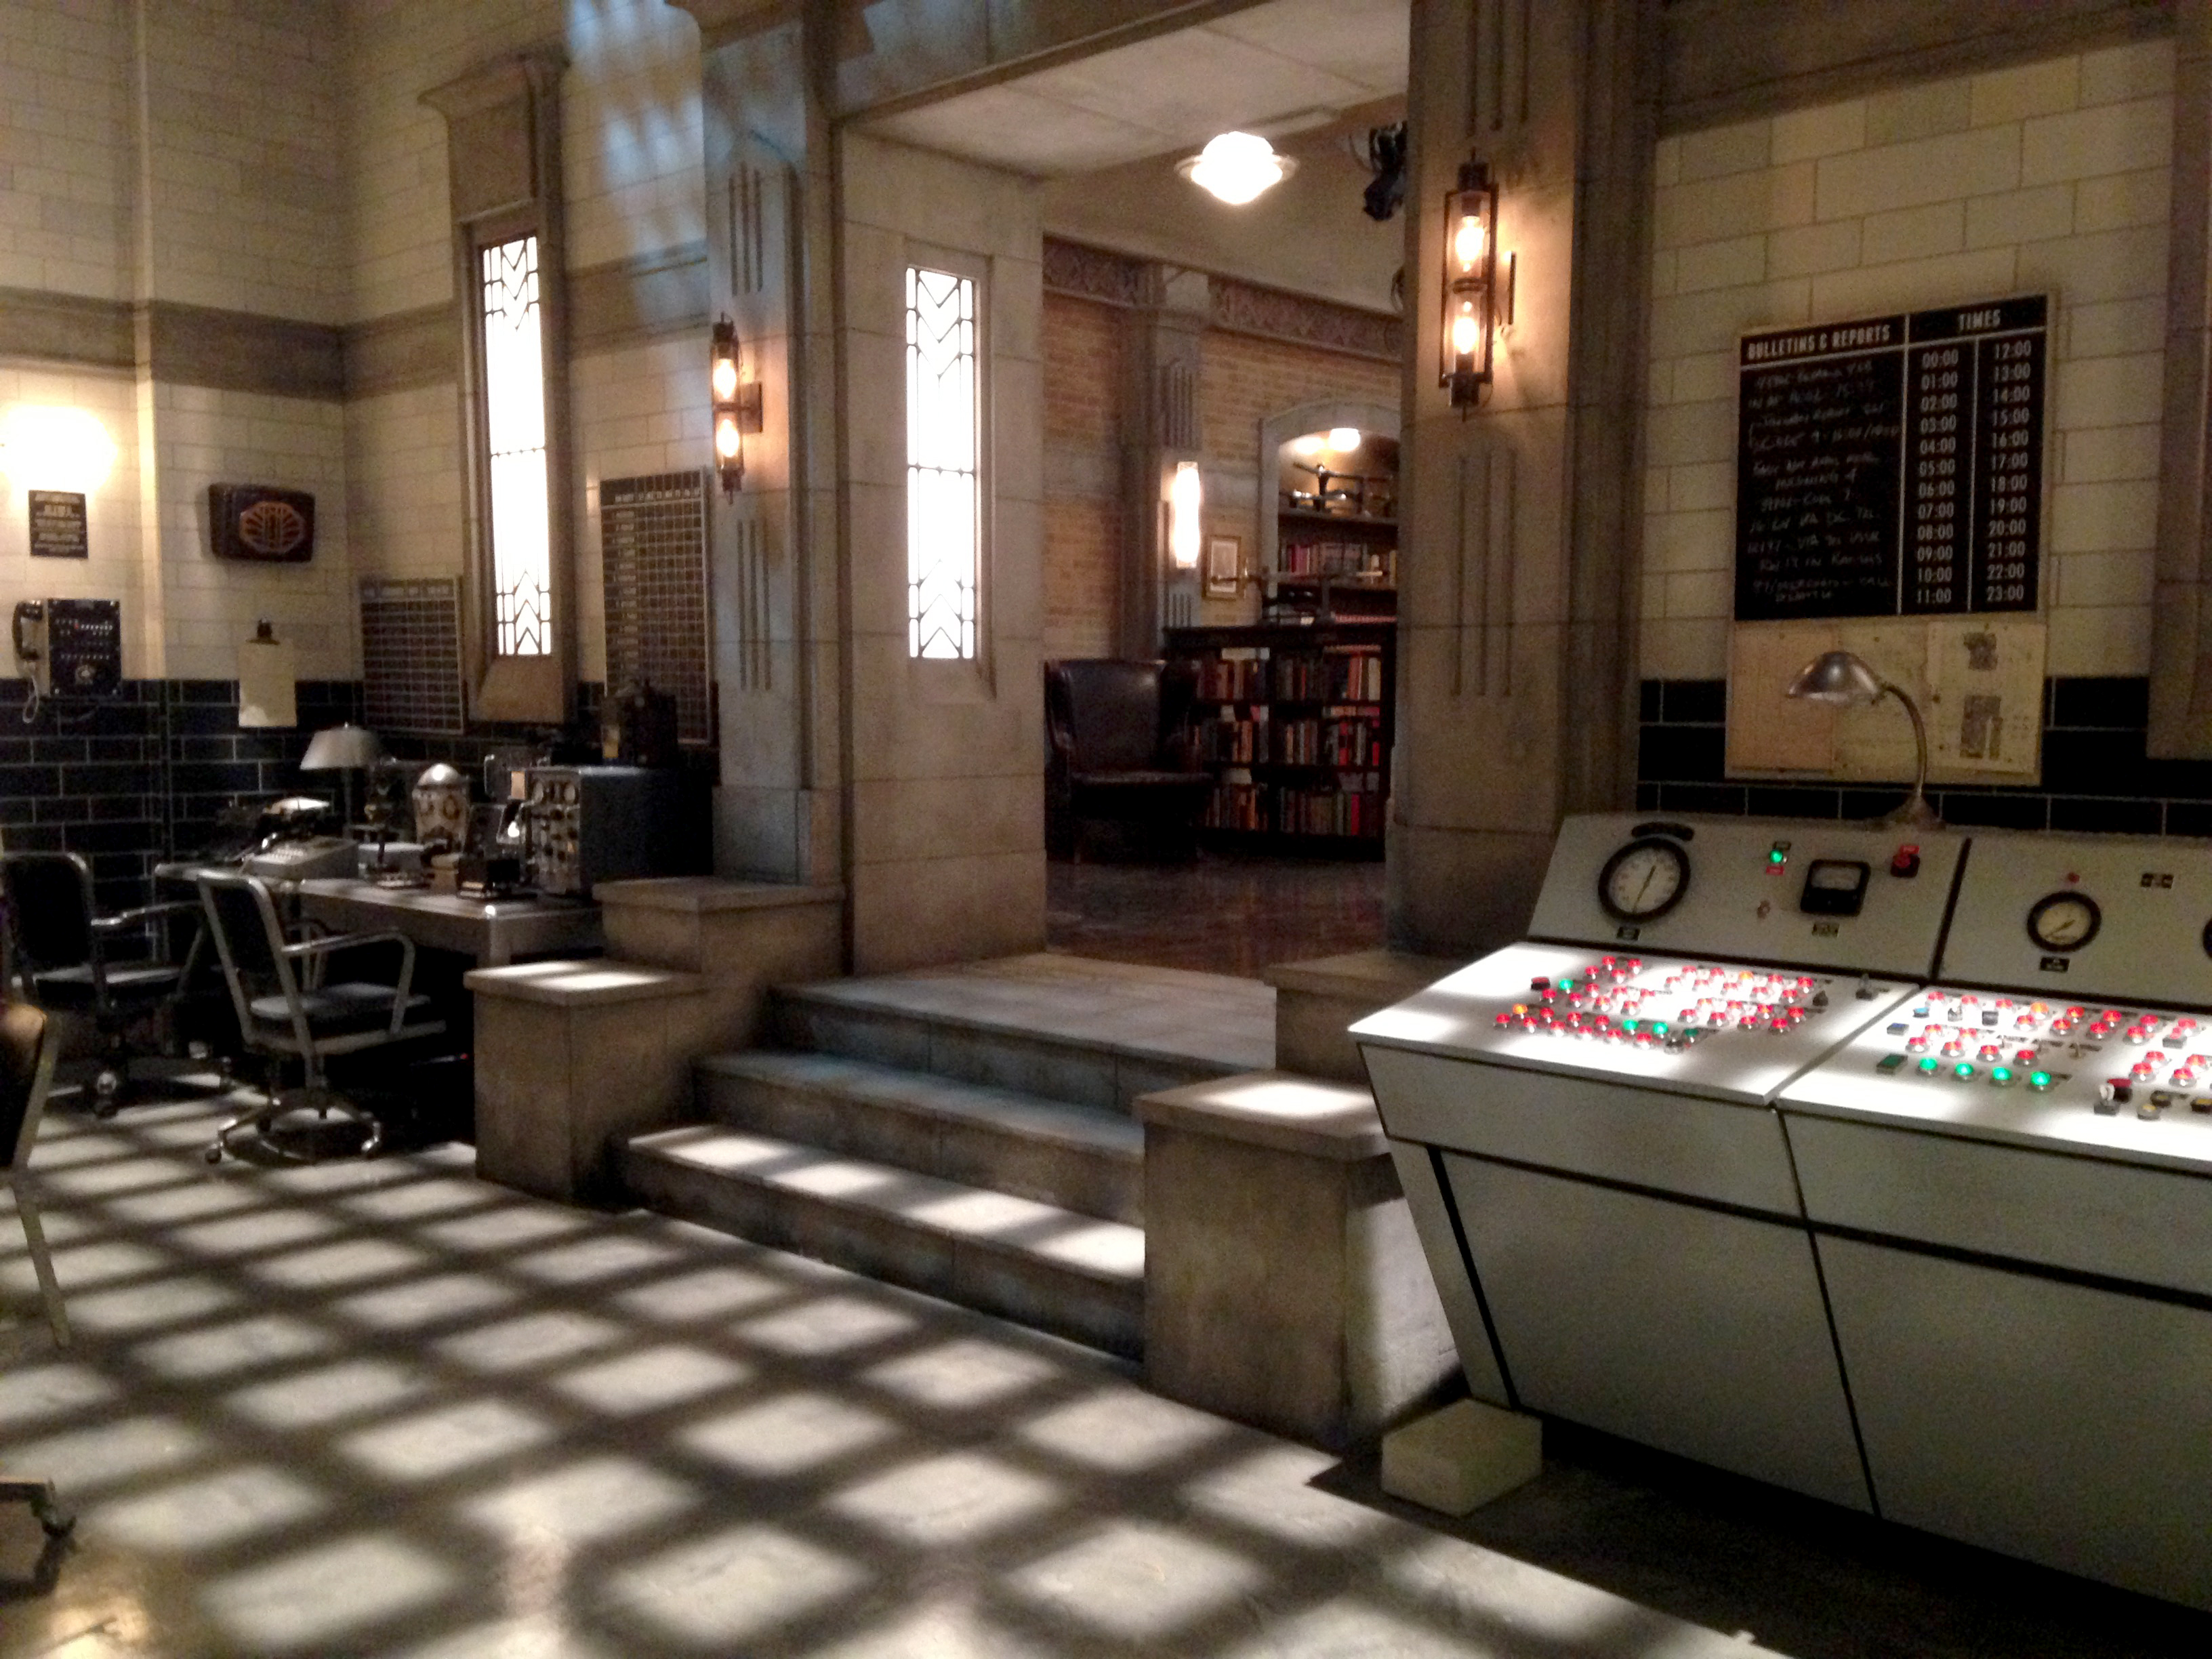 Go Behind The Scenes And See SUPERNATURALS Sets And Props